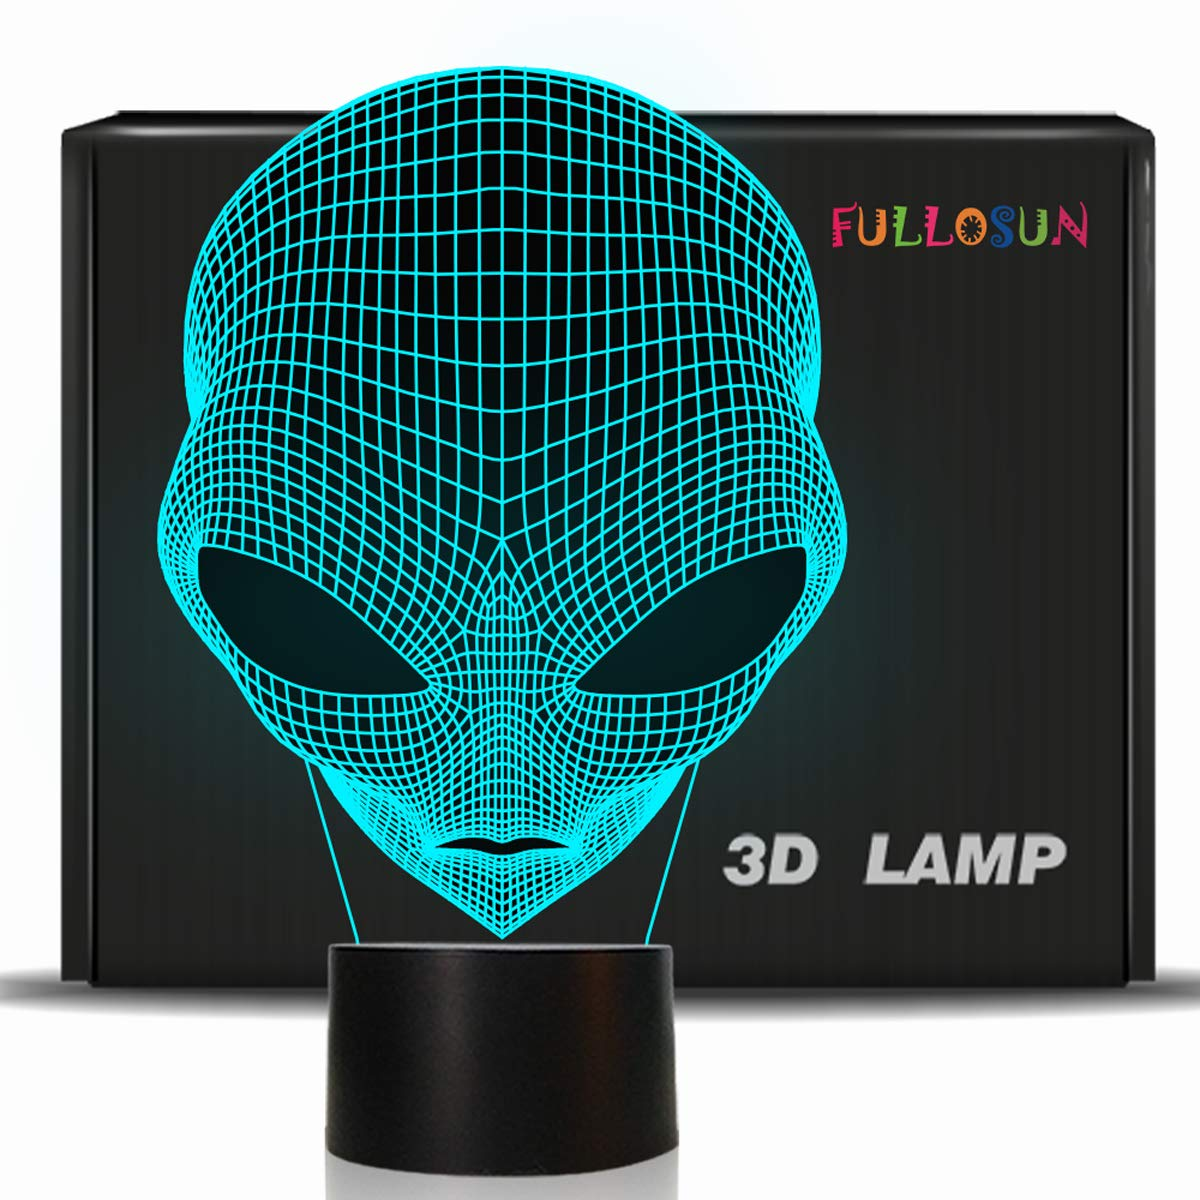 FULLOSUN 3D Baby Night Light Martian ET Projection LED Lamp Alien Nursery  Nightlight For Kids Room Home Decor Xmas Birthday Gifts With 7 Color  Changing ...